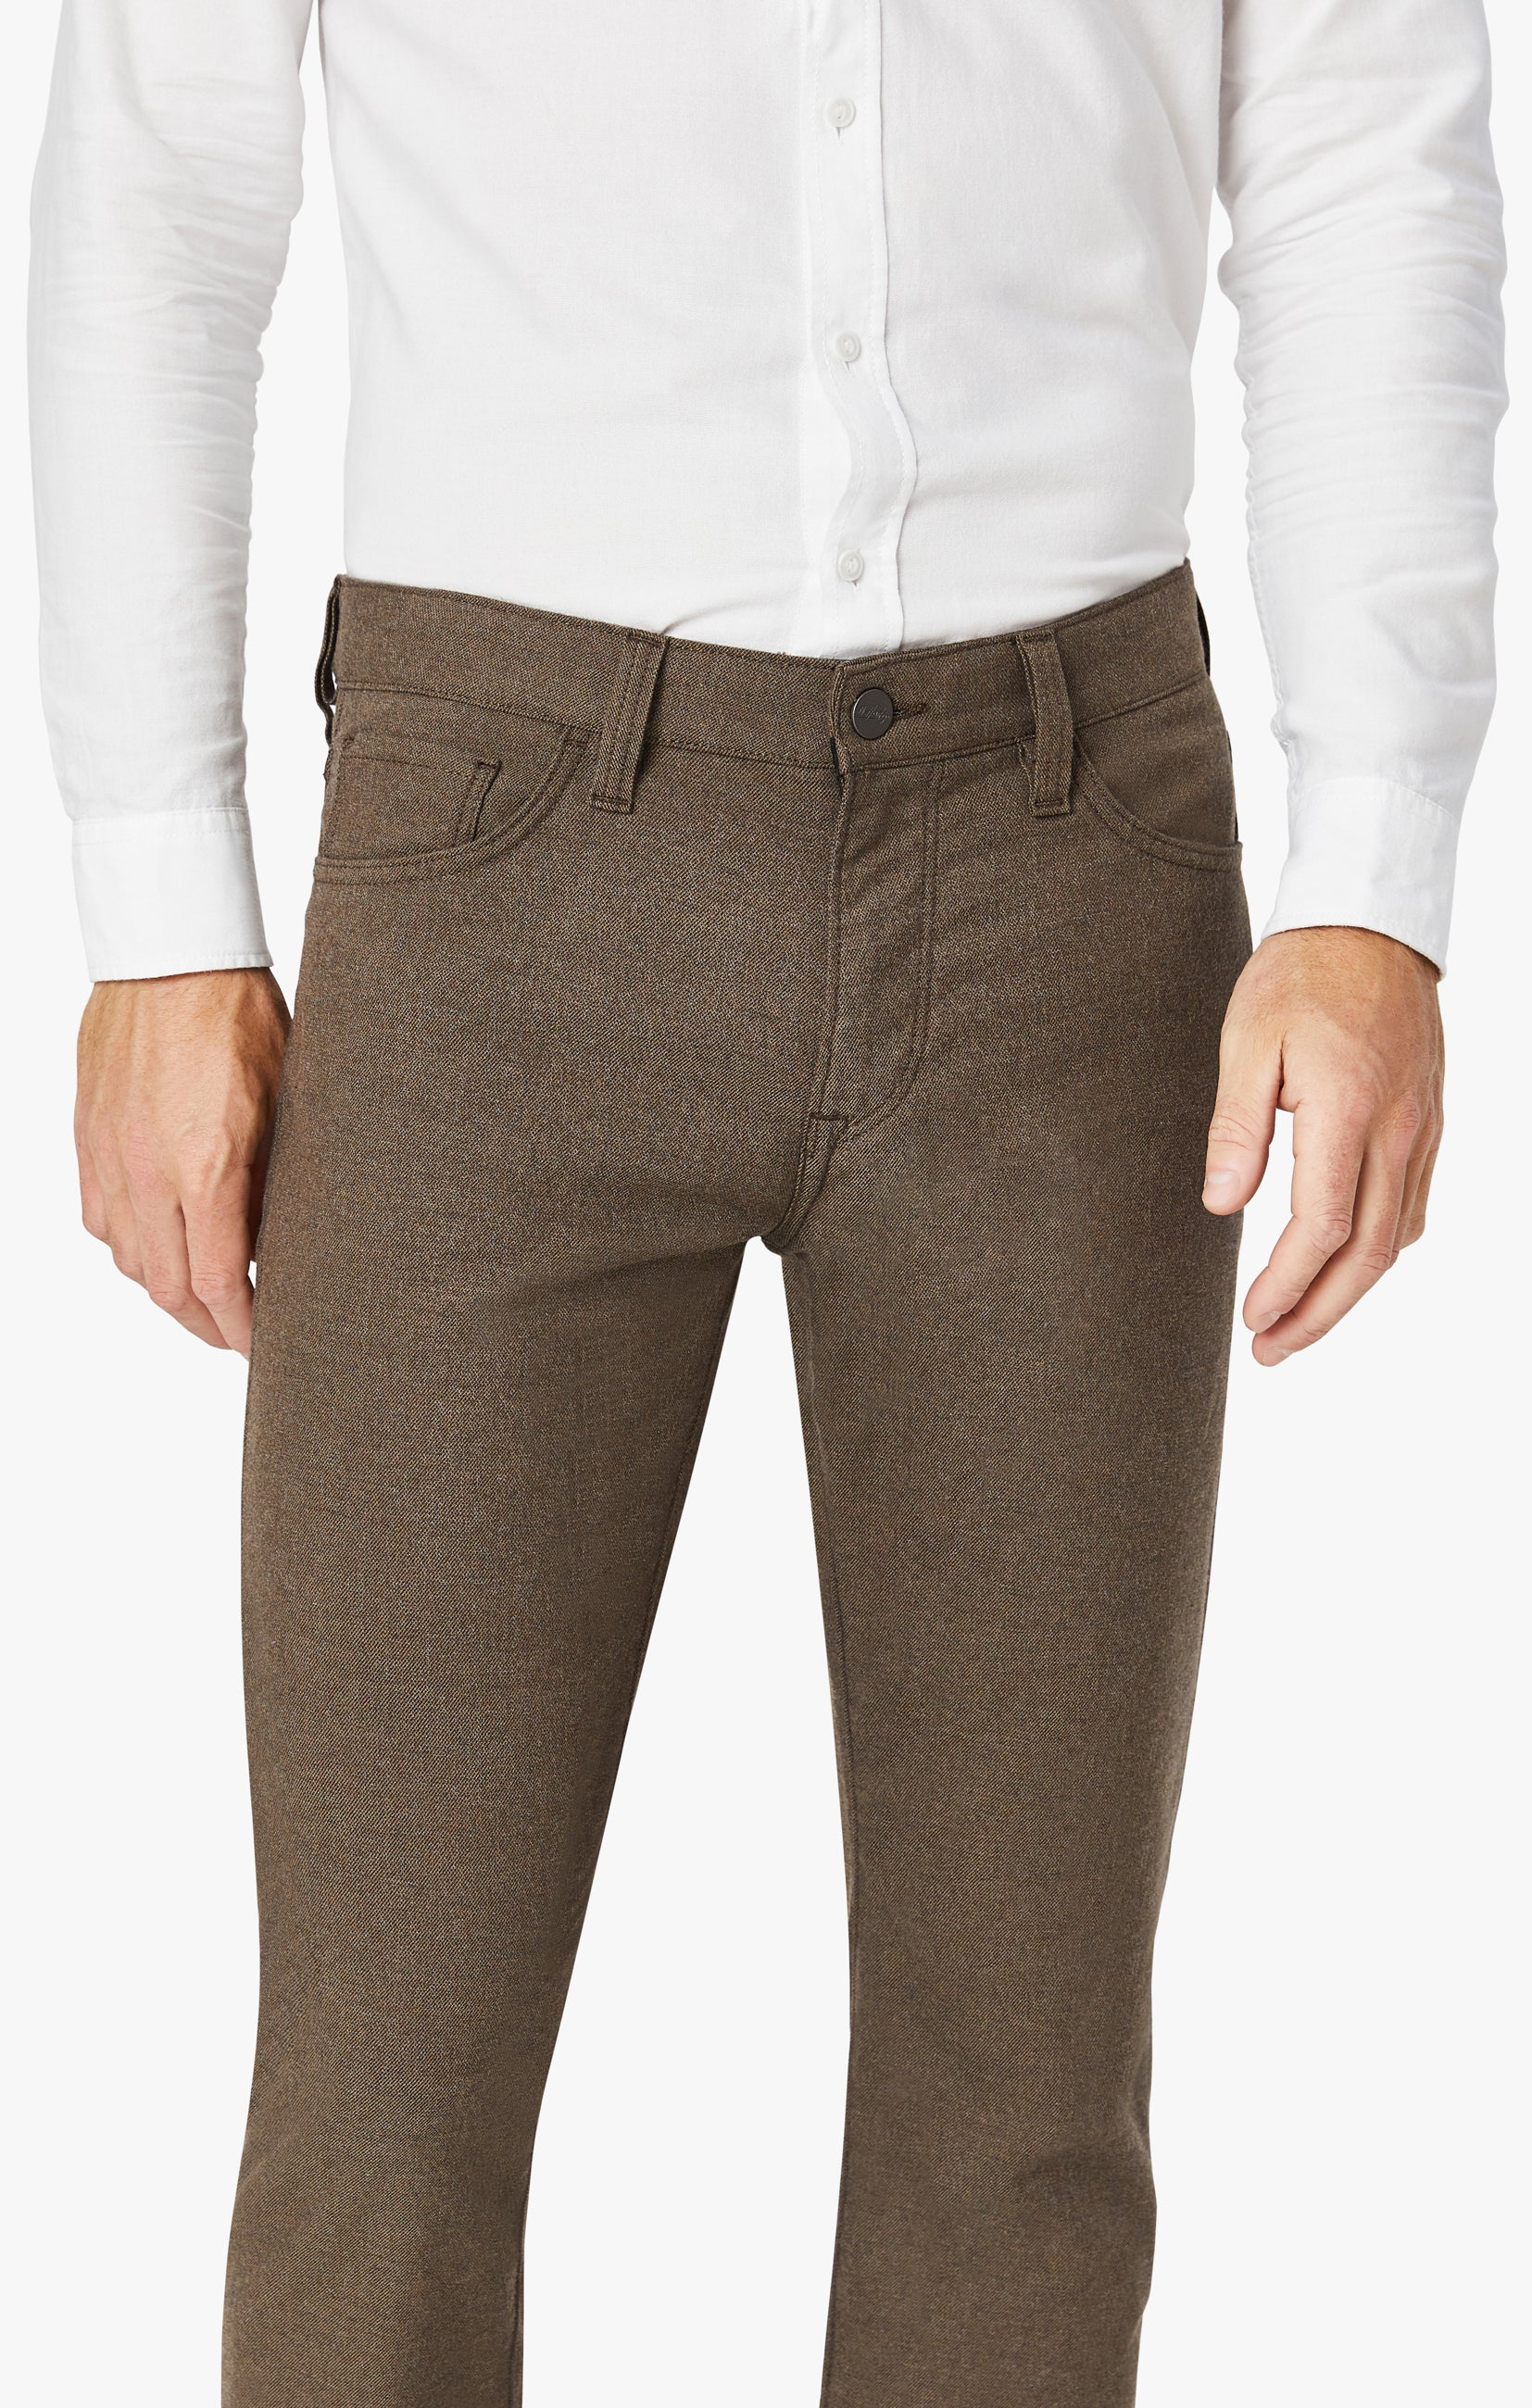 Courage Straight Leg Pants In Mocha Supreme Image 2